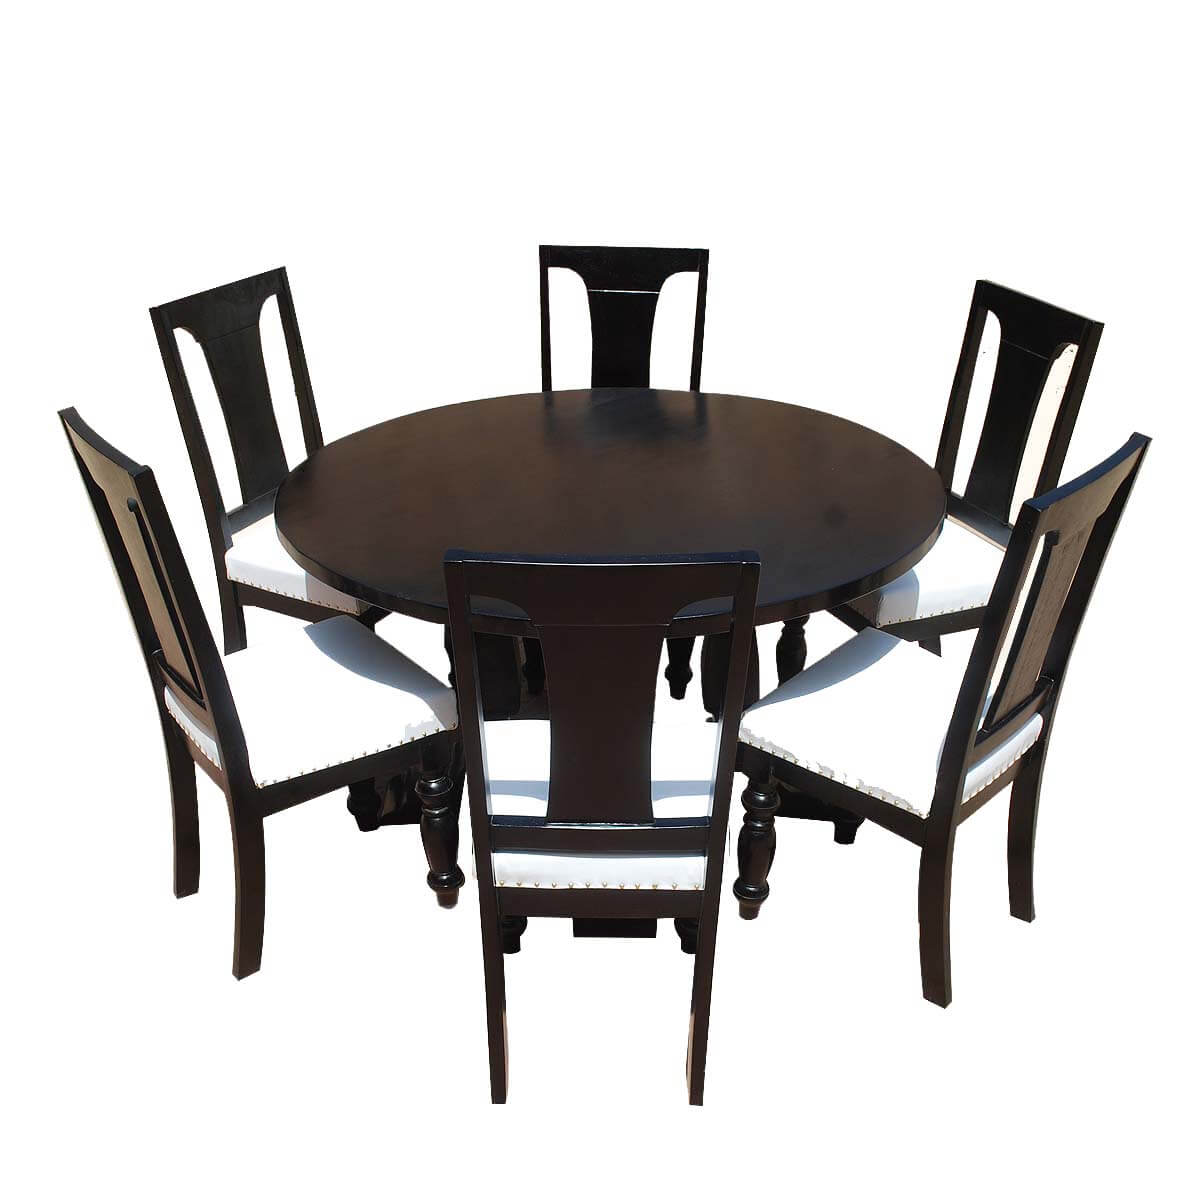 California solid wood leather 7p round dining room set for Leather dining room sets